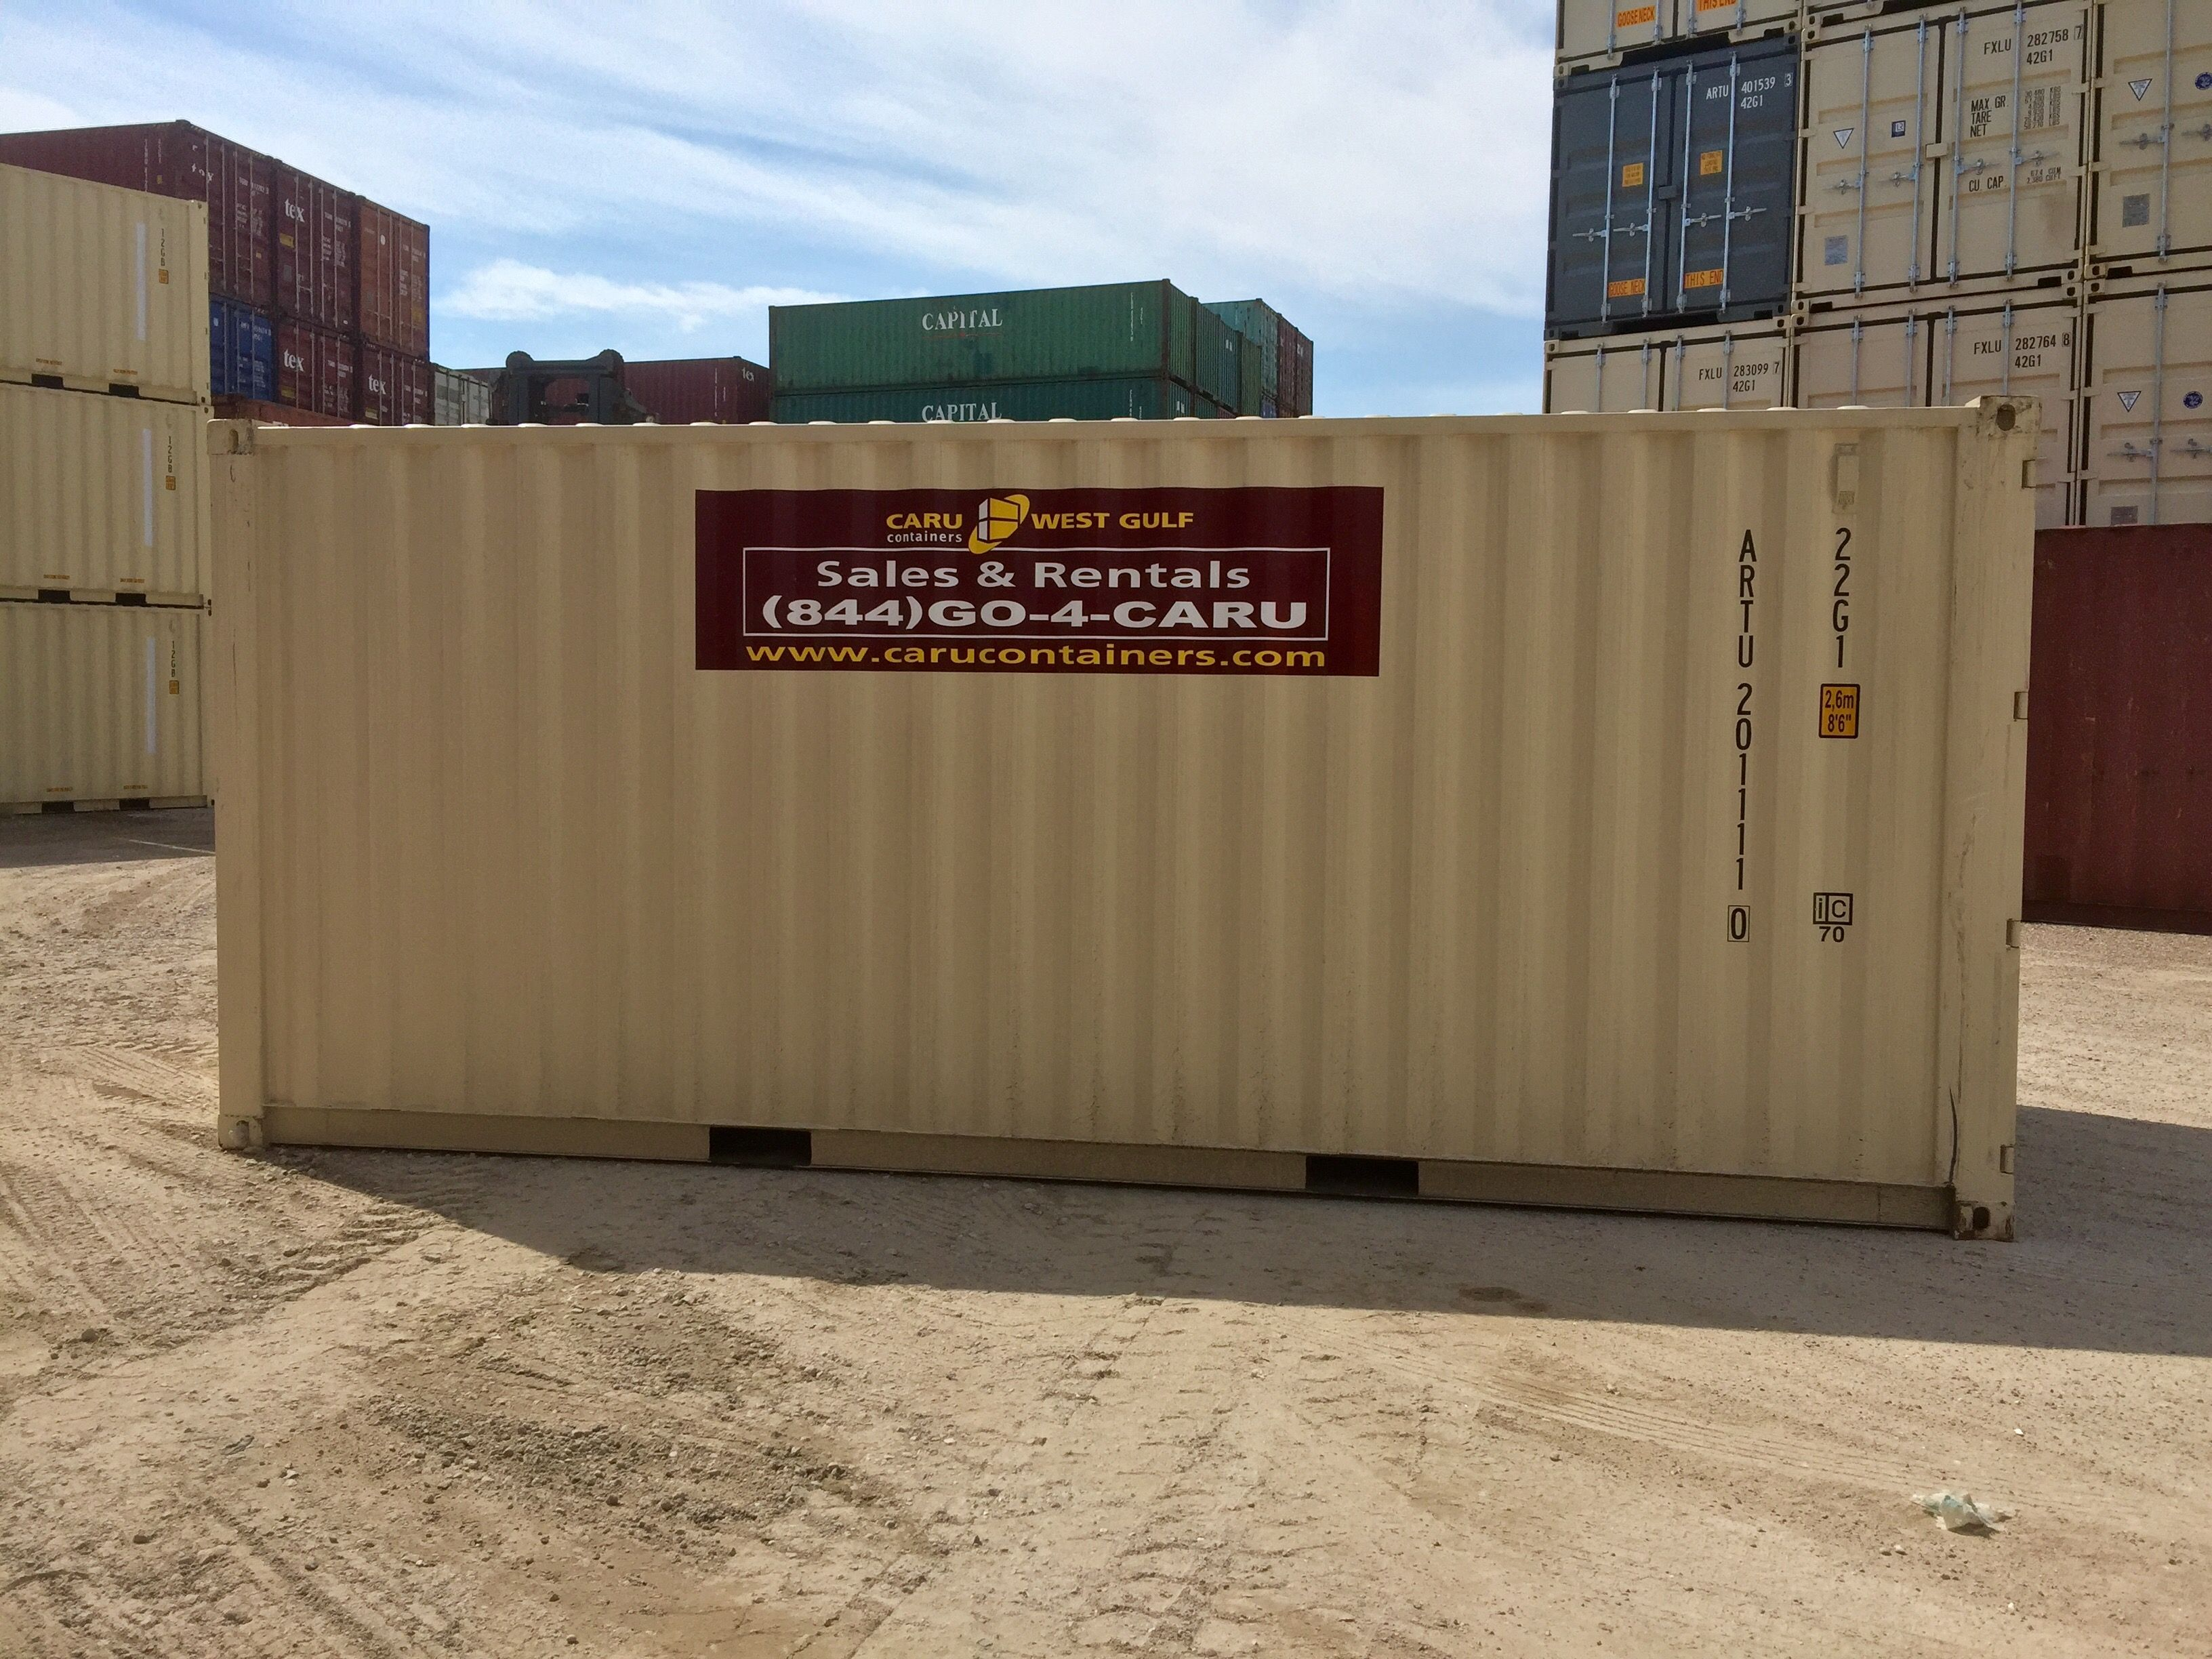 Caru West Gulf Containers Rentals 20 Storage Container Image